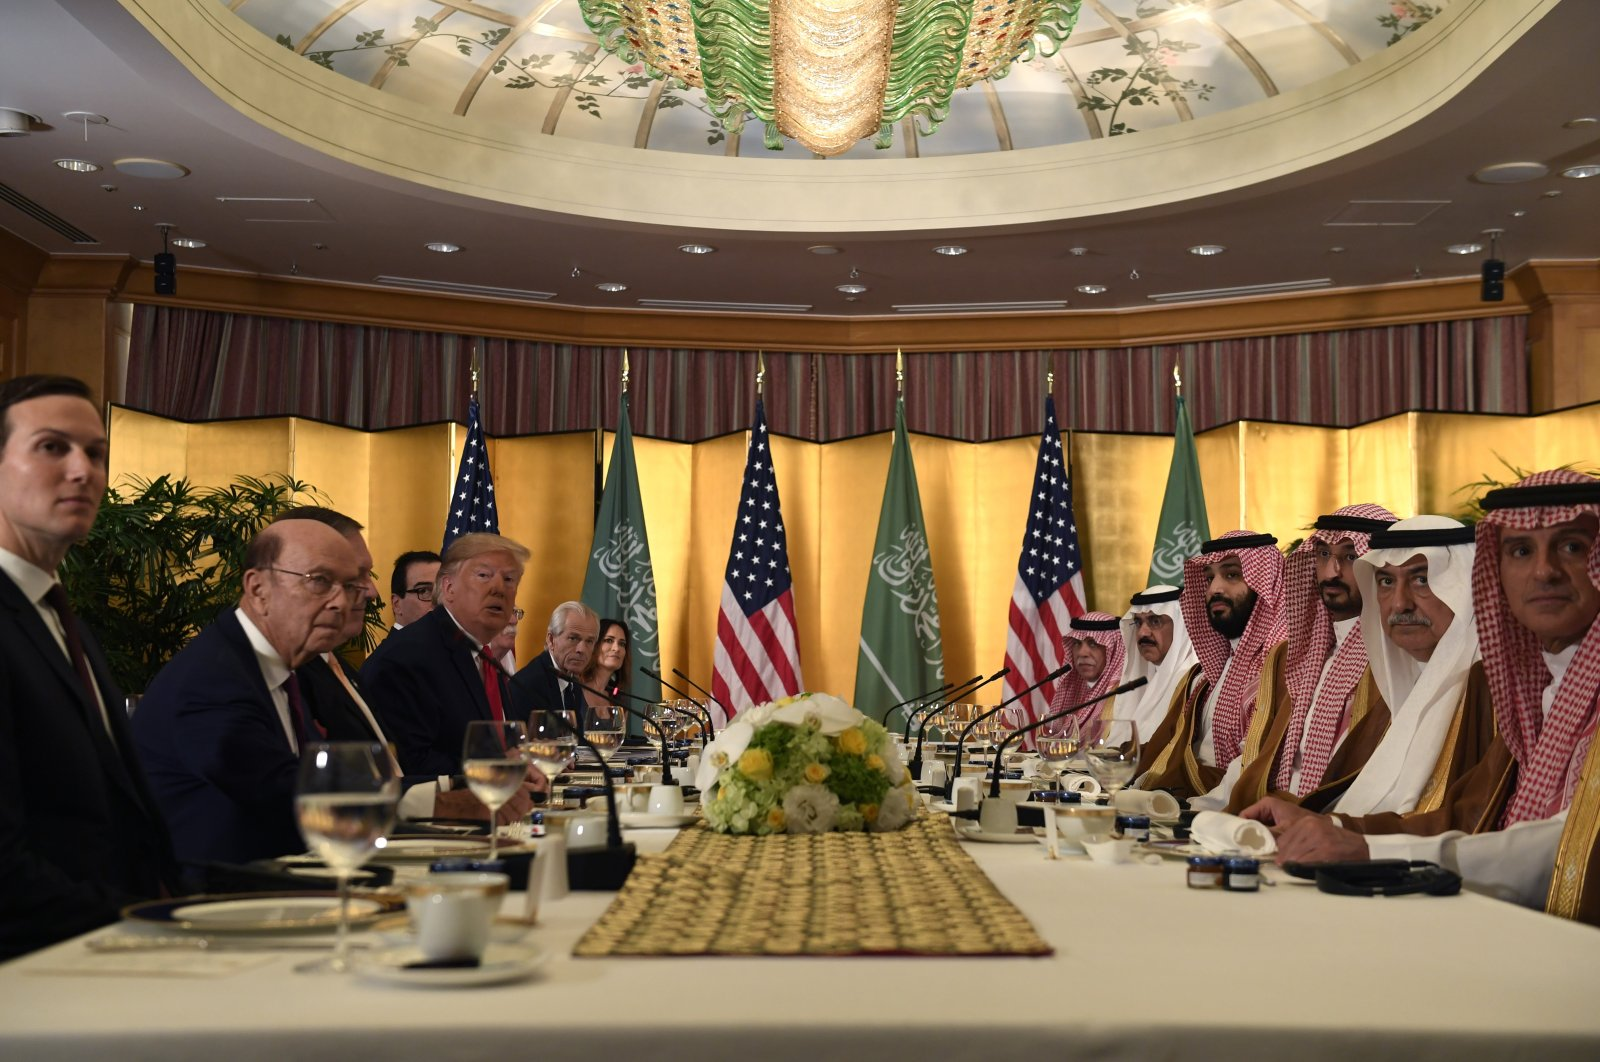 U.S. President Donald Trump meets with Saudi Arabia Crown Prince Mohammed bin Salman (MBS) during a working breakfast on the sidelines of the G-20 summit in Osaka, Japan, June 29, 2019. (AP Photo)